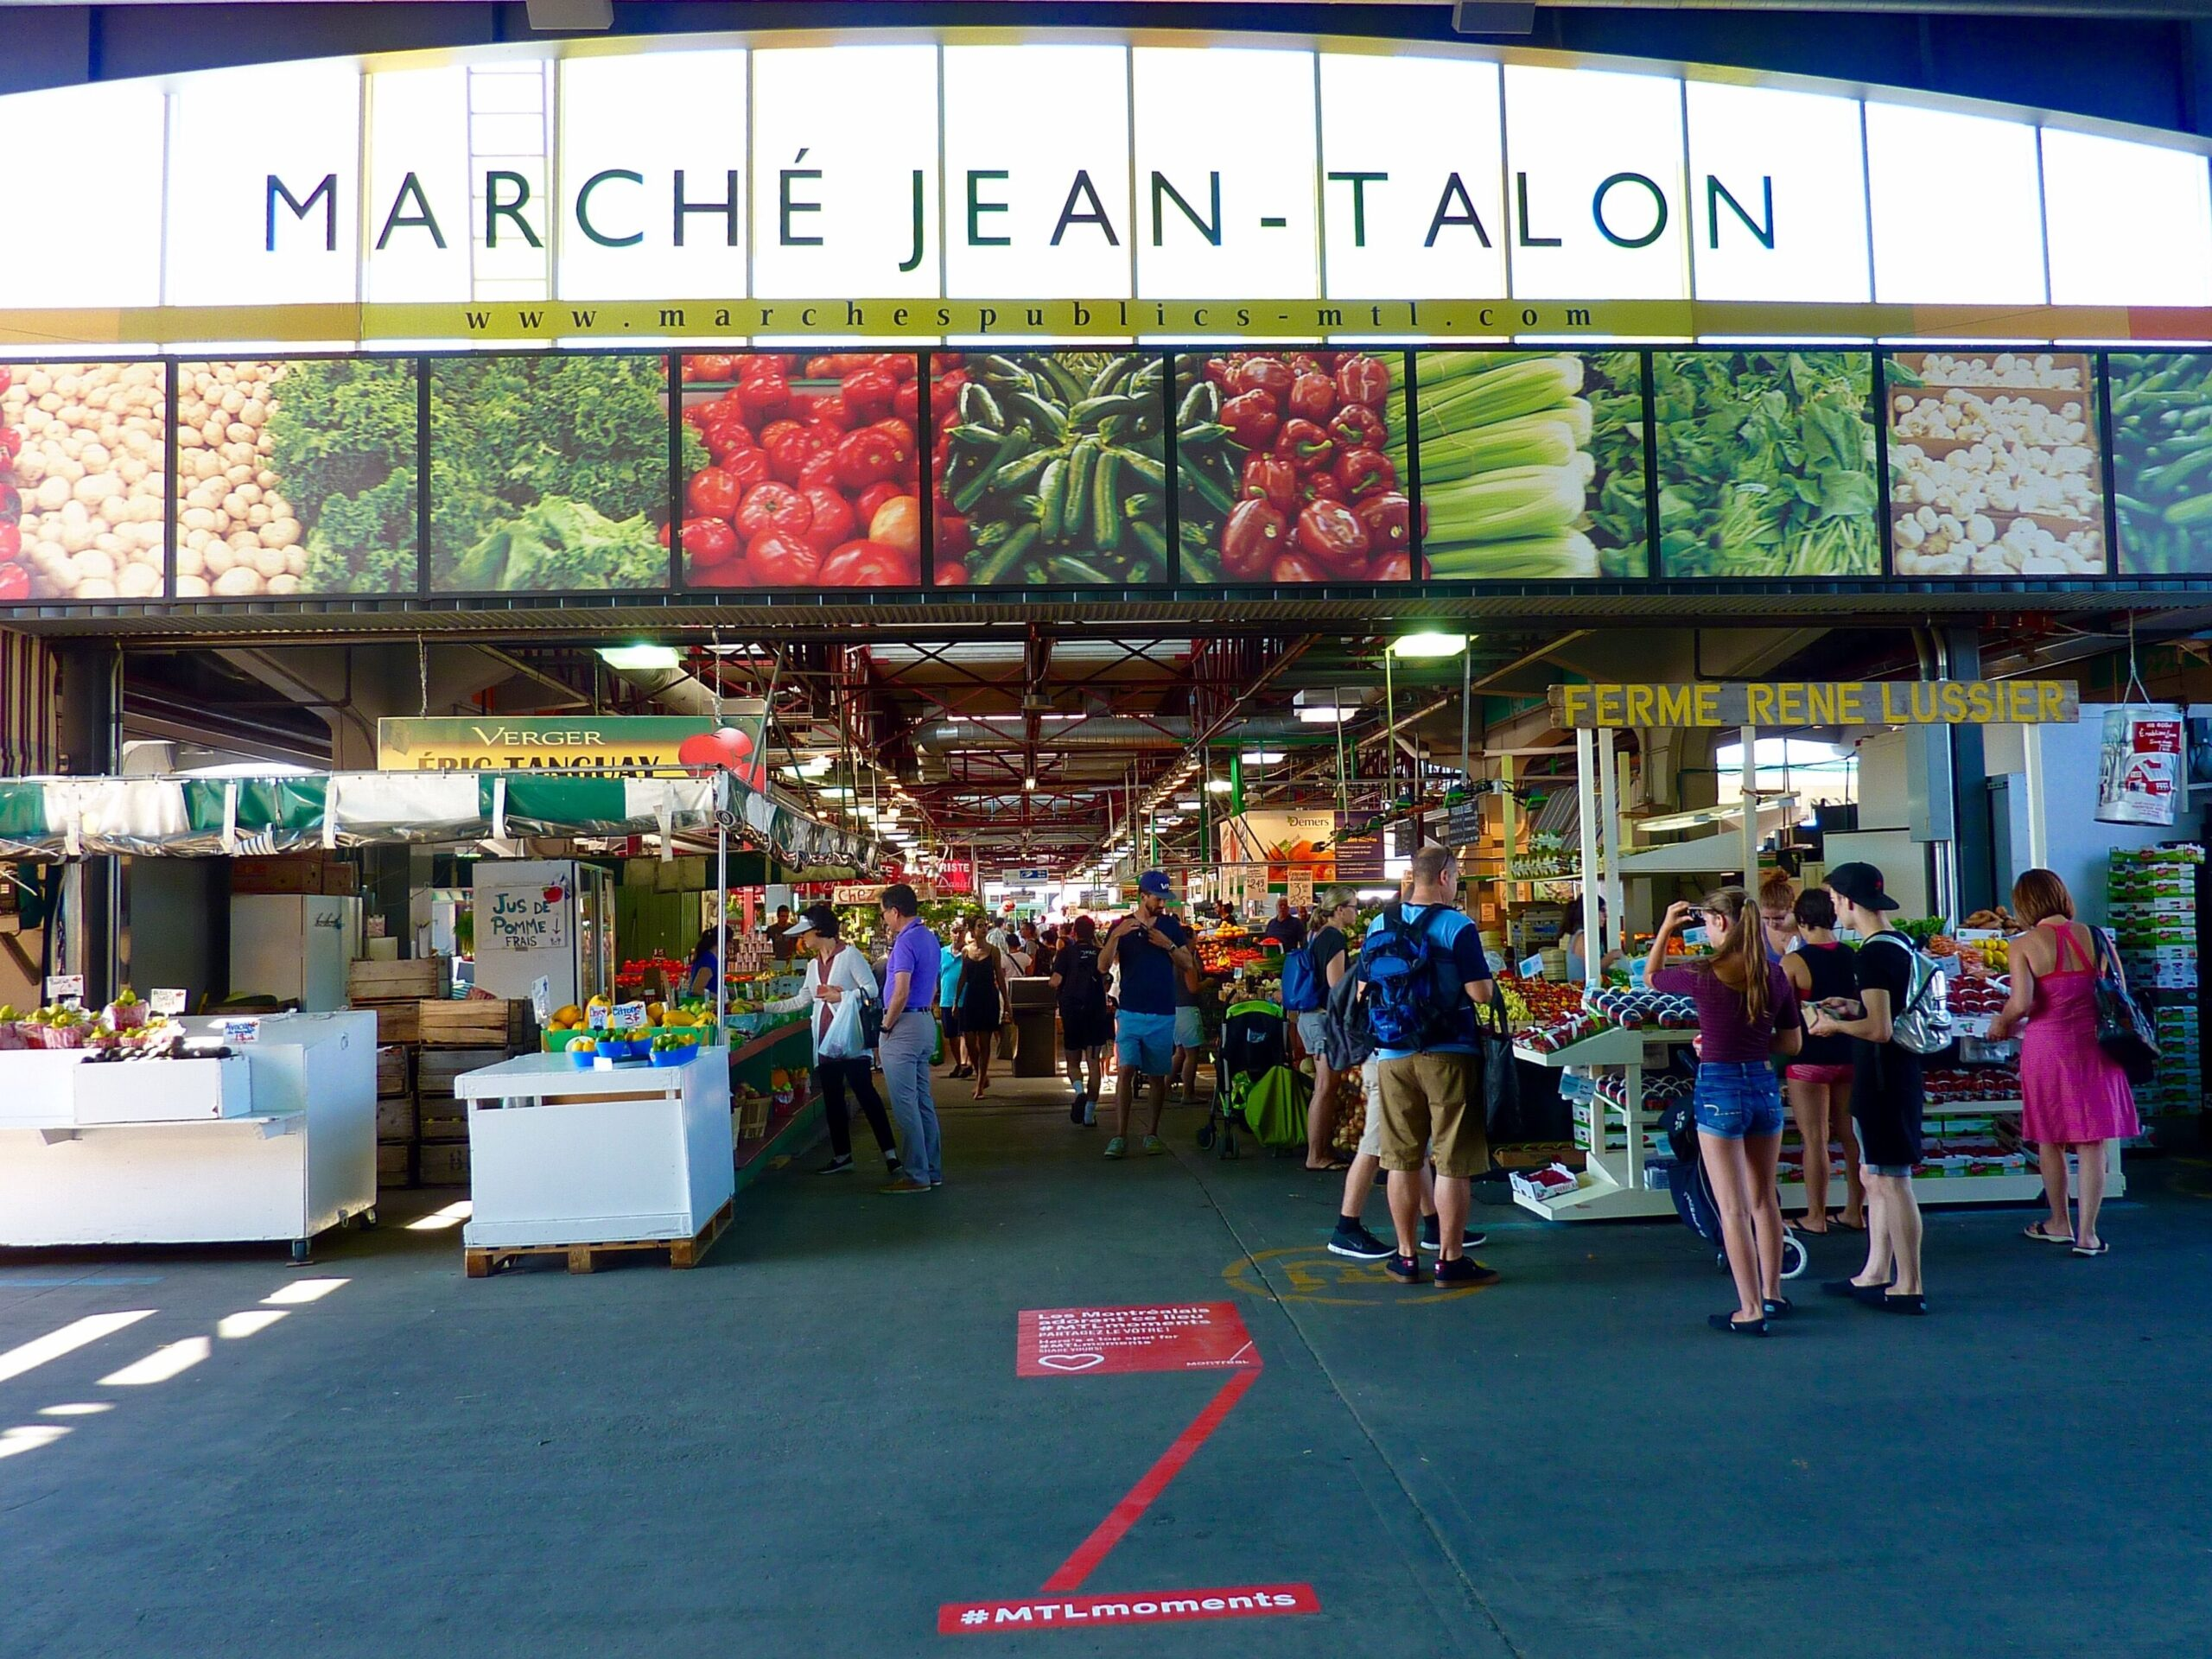 Marché Jean-Talon, the city's oldest public market in the heart of Little Italy